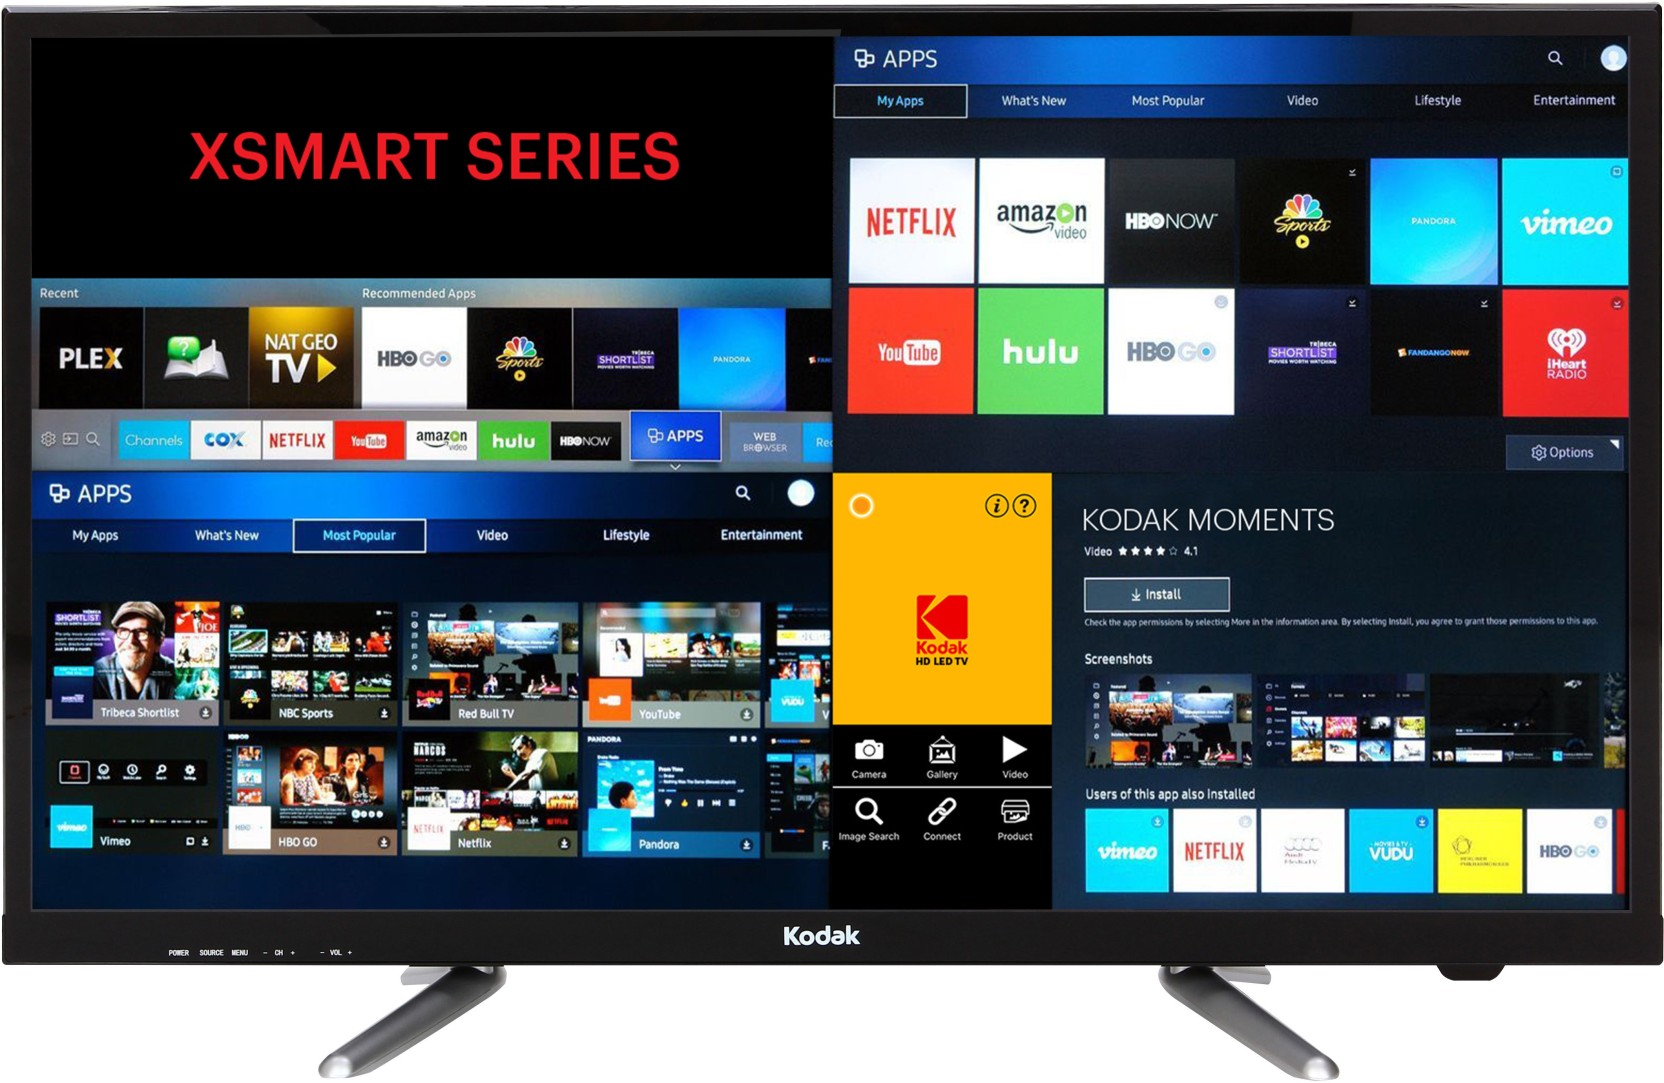 kodak 80cm 32 inch hd ready led smart tv online at best prices in india. Black Bedroom Furniture Sets. Home Design Ideas